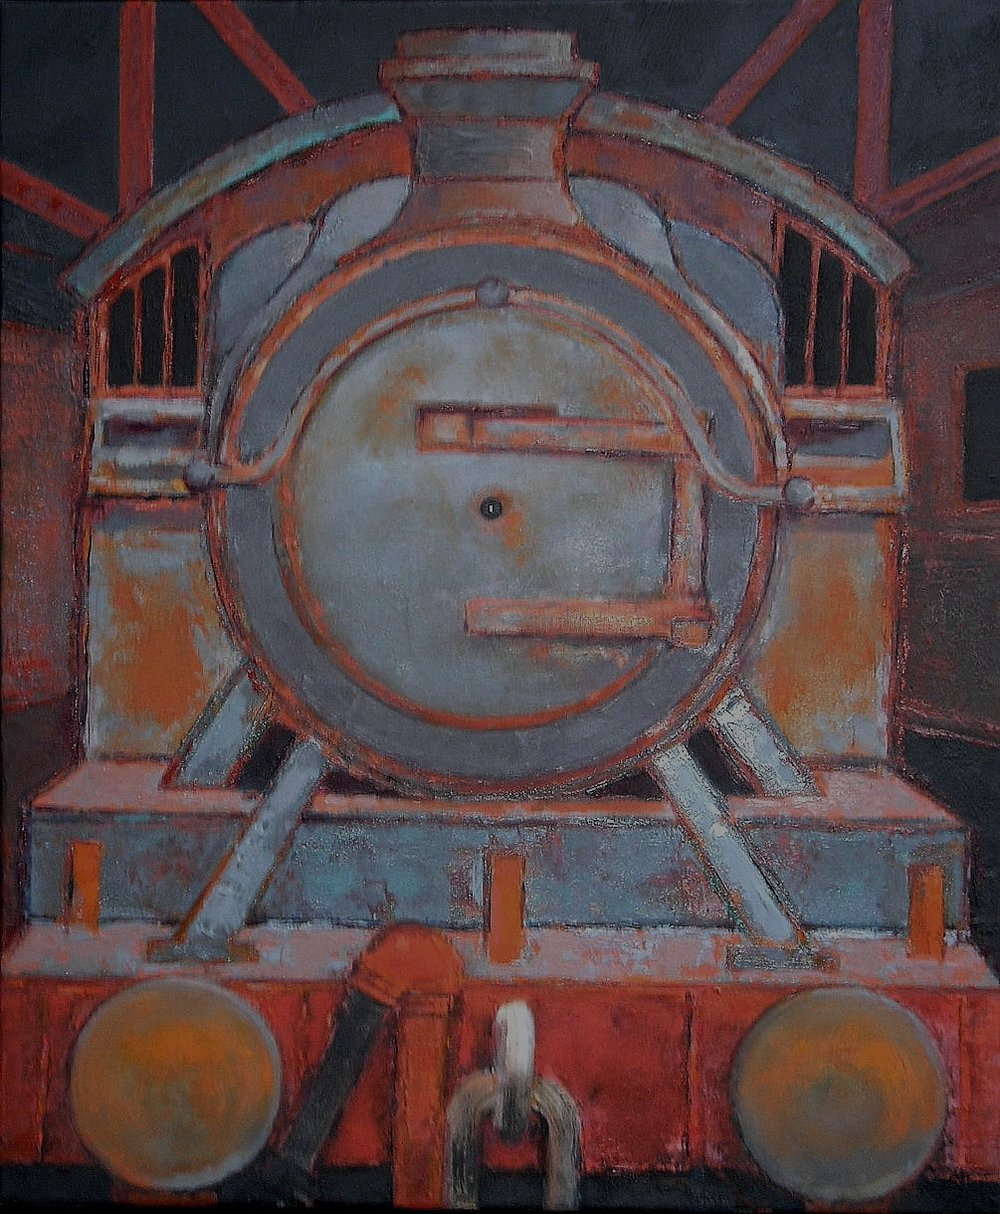 Corrosion IV   64 x 54 cm oil on canvas   Exhibited at RA    Summer exhibition 2010   private collection *